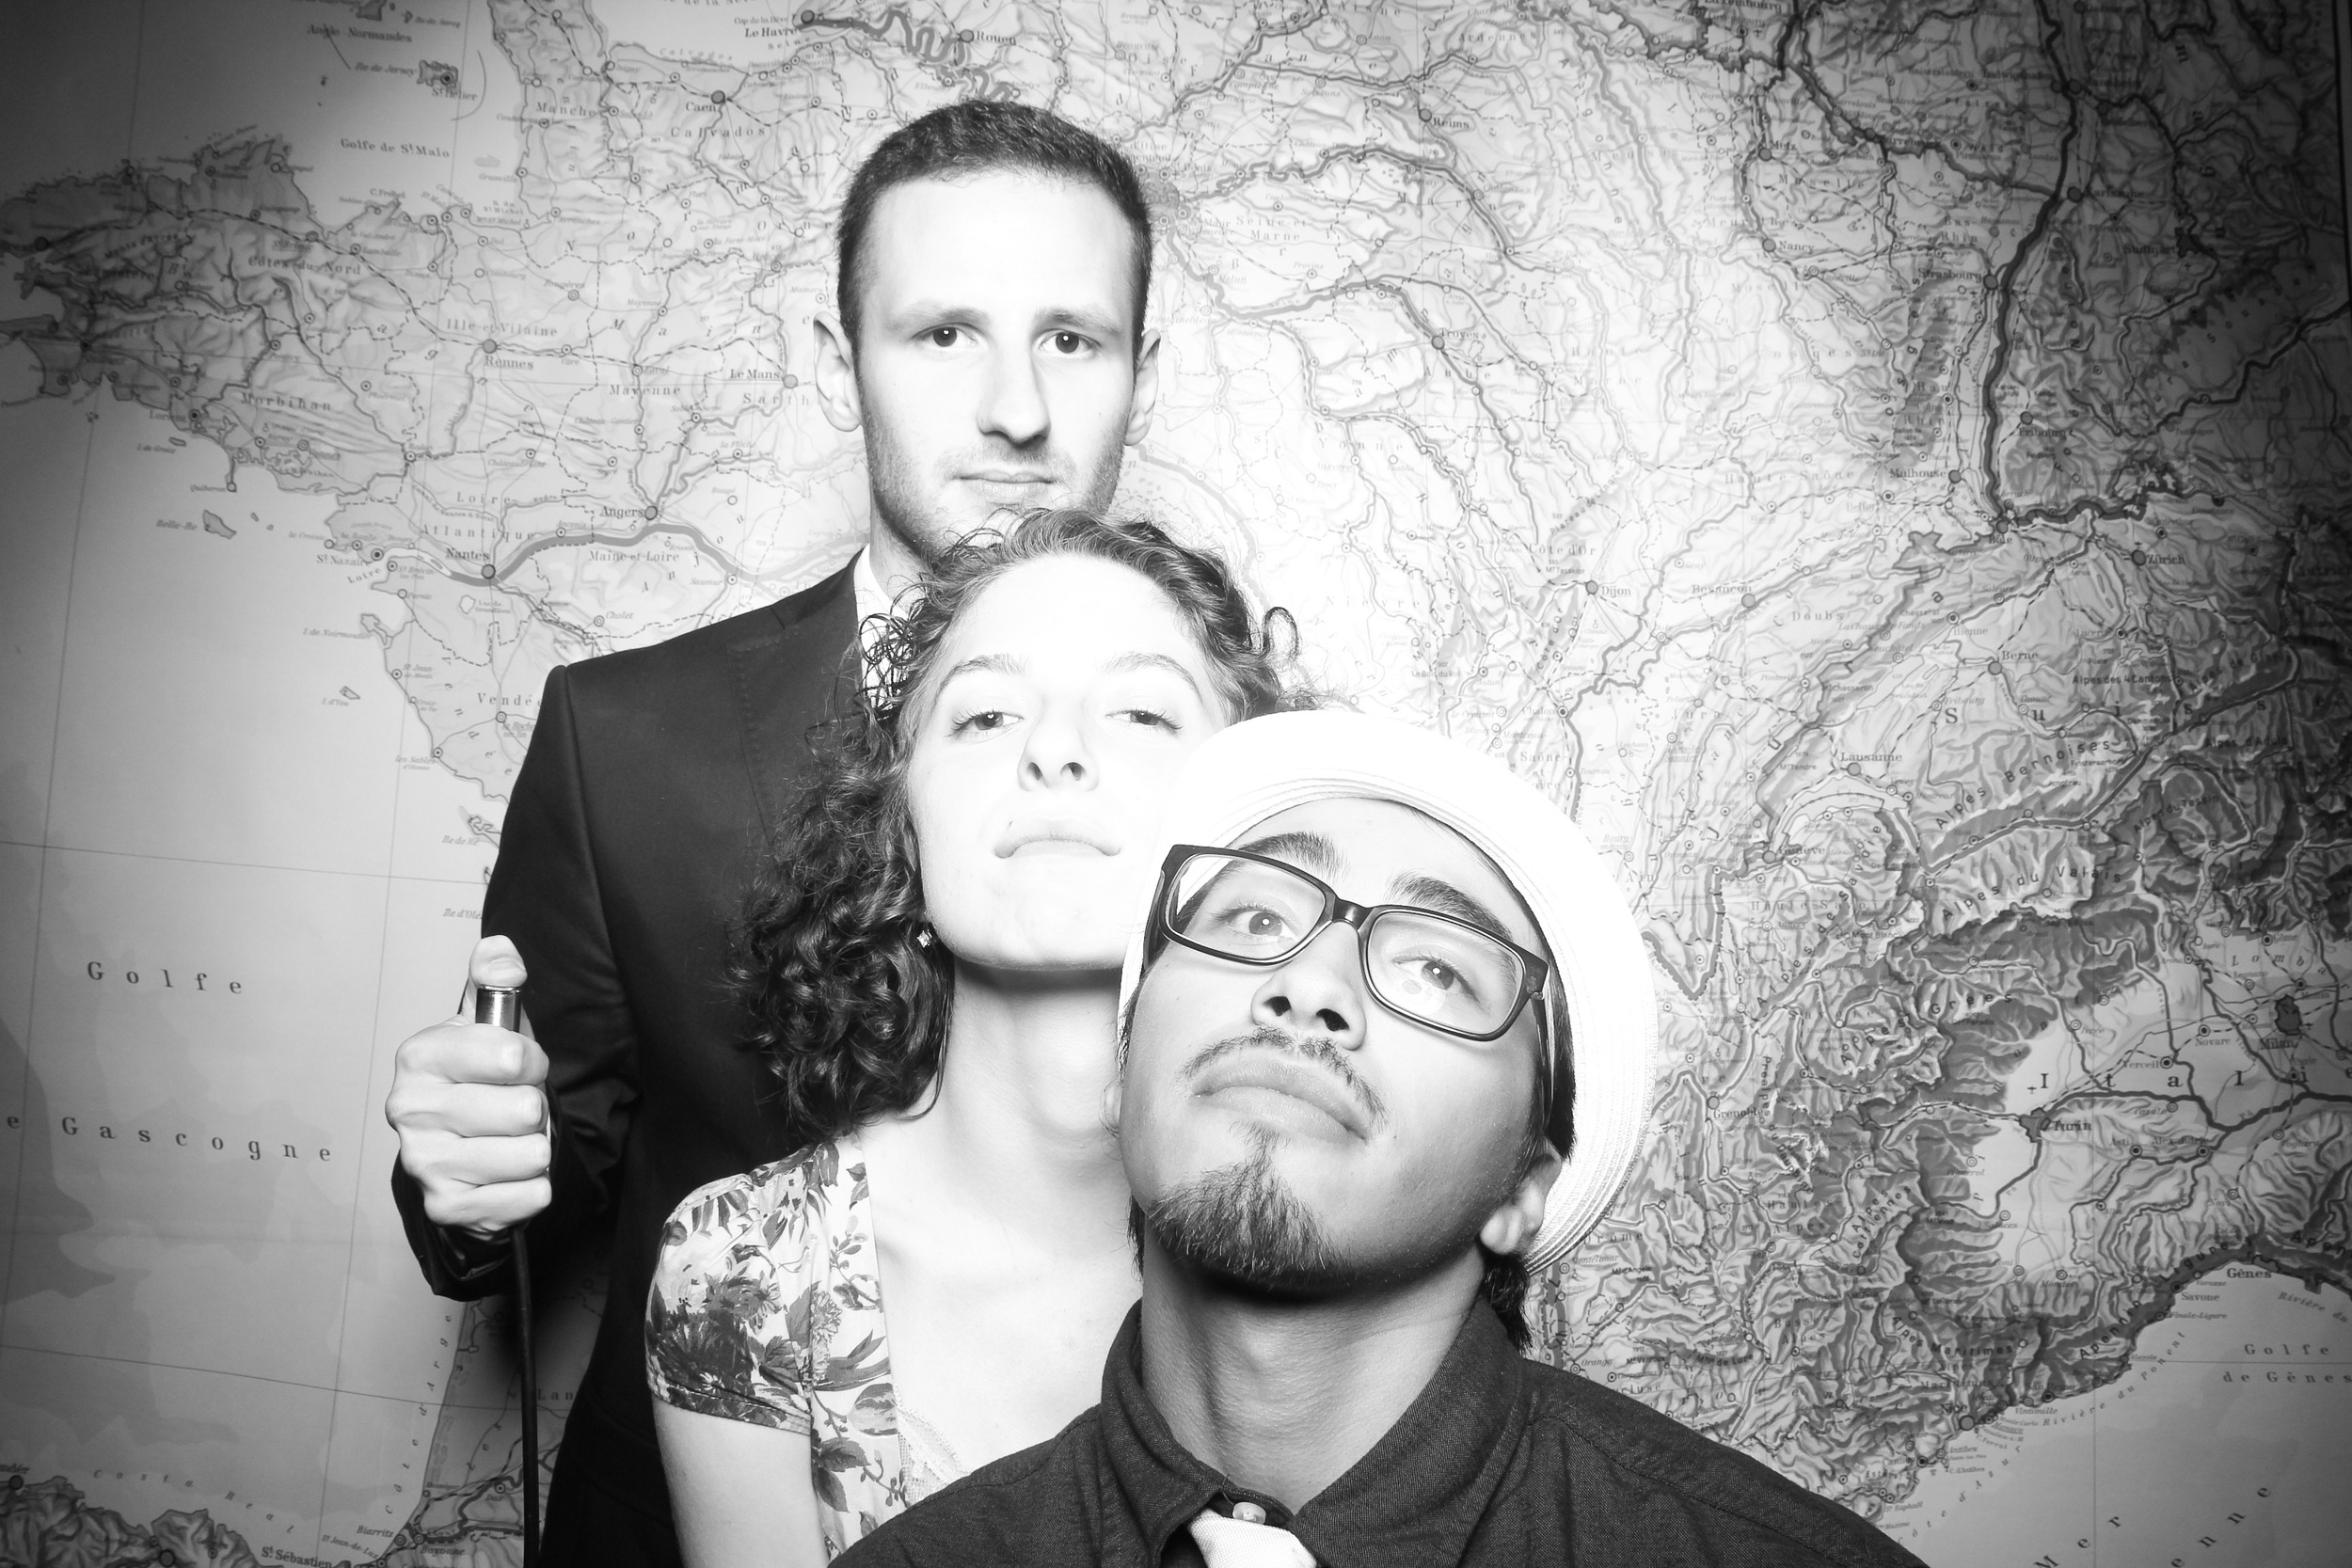 Another fun Fotio photo booth picture at the Adler.